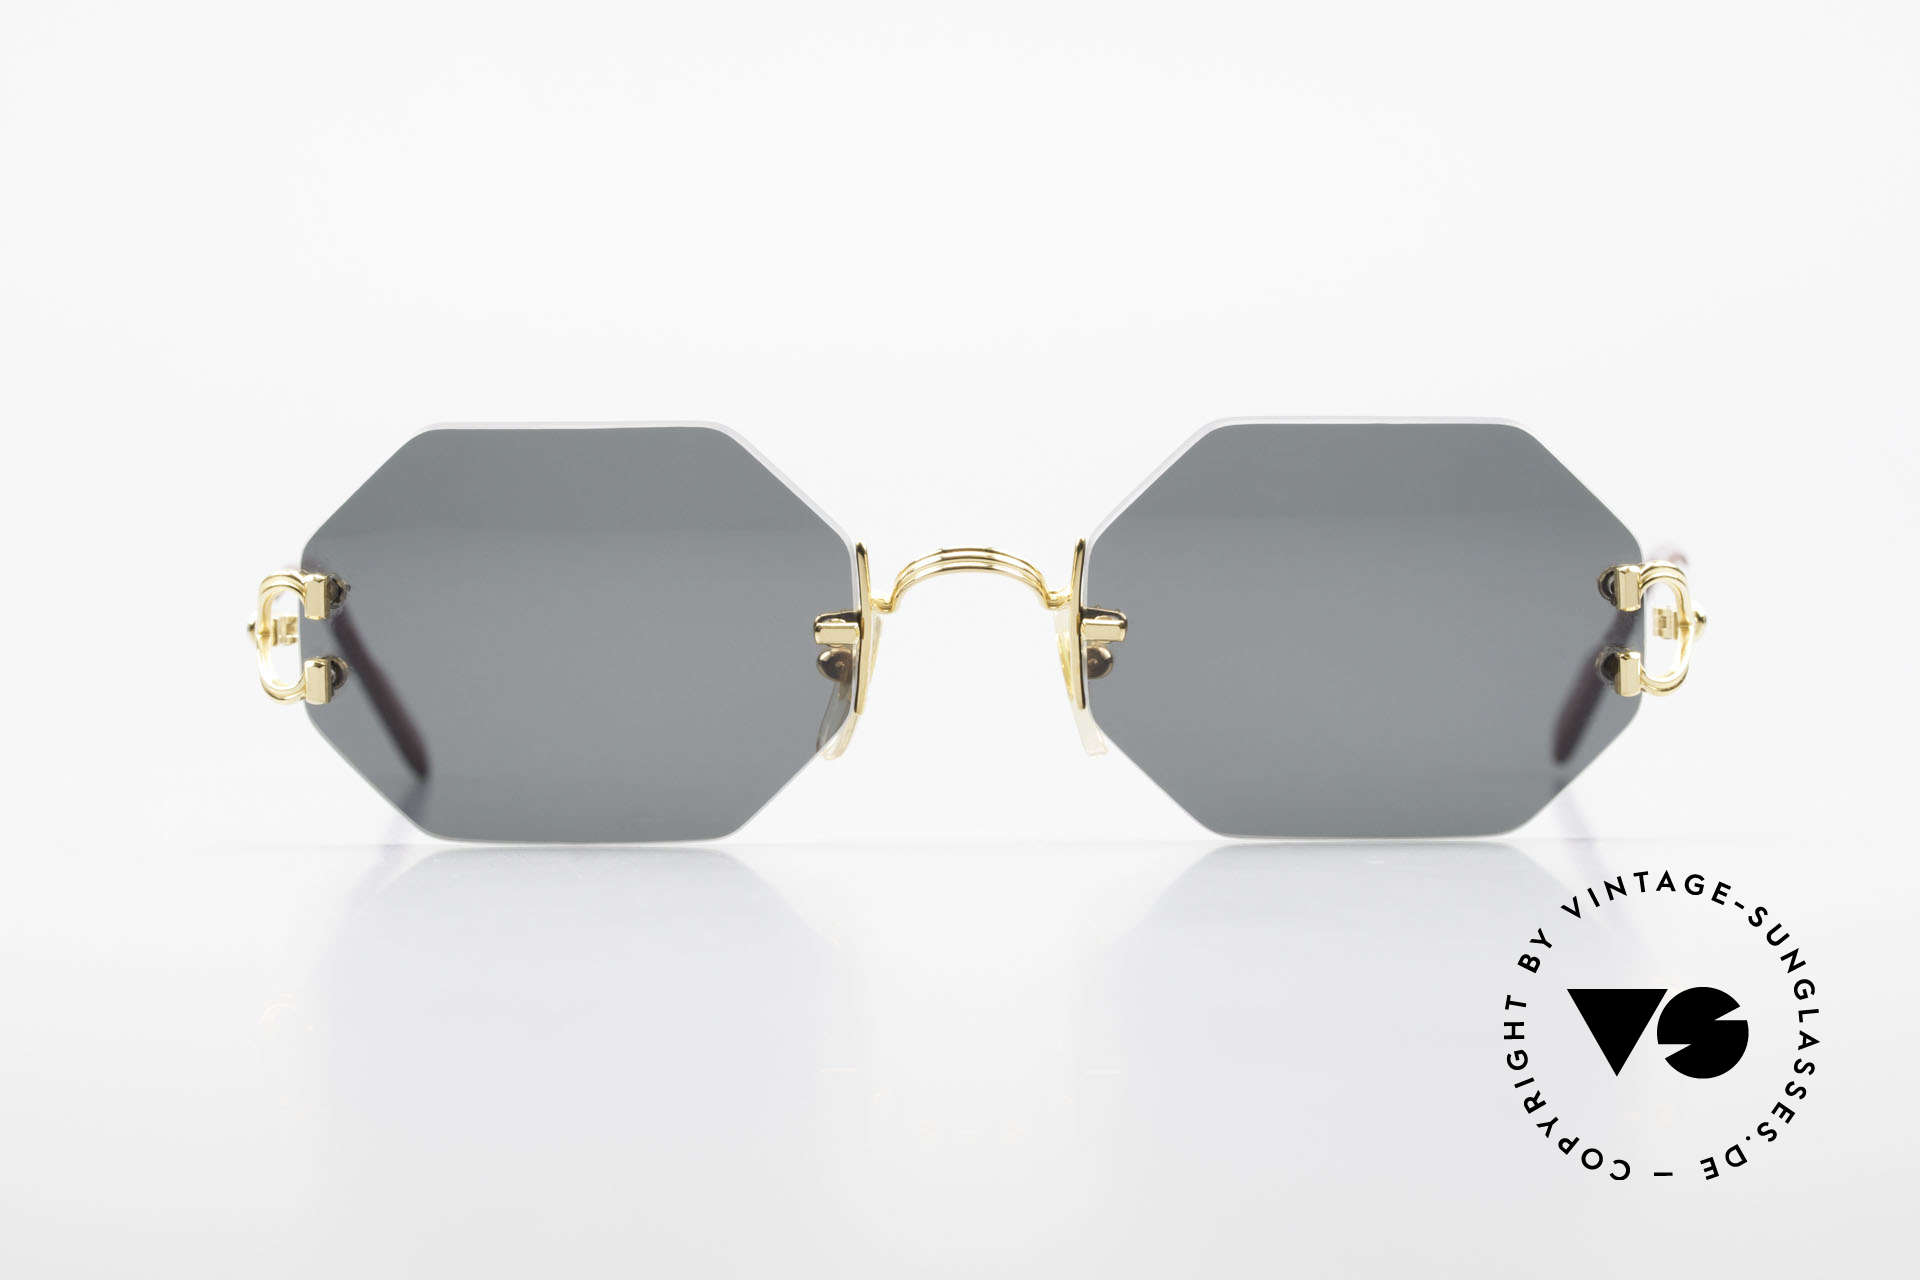 Cartier Rimless Octag Rimless Octagonal Shades - L, model of the rimless series with new OCTAG lenses, Made for Men and Women